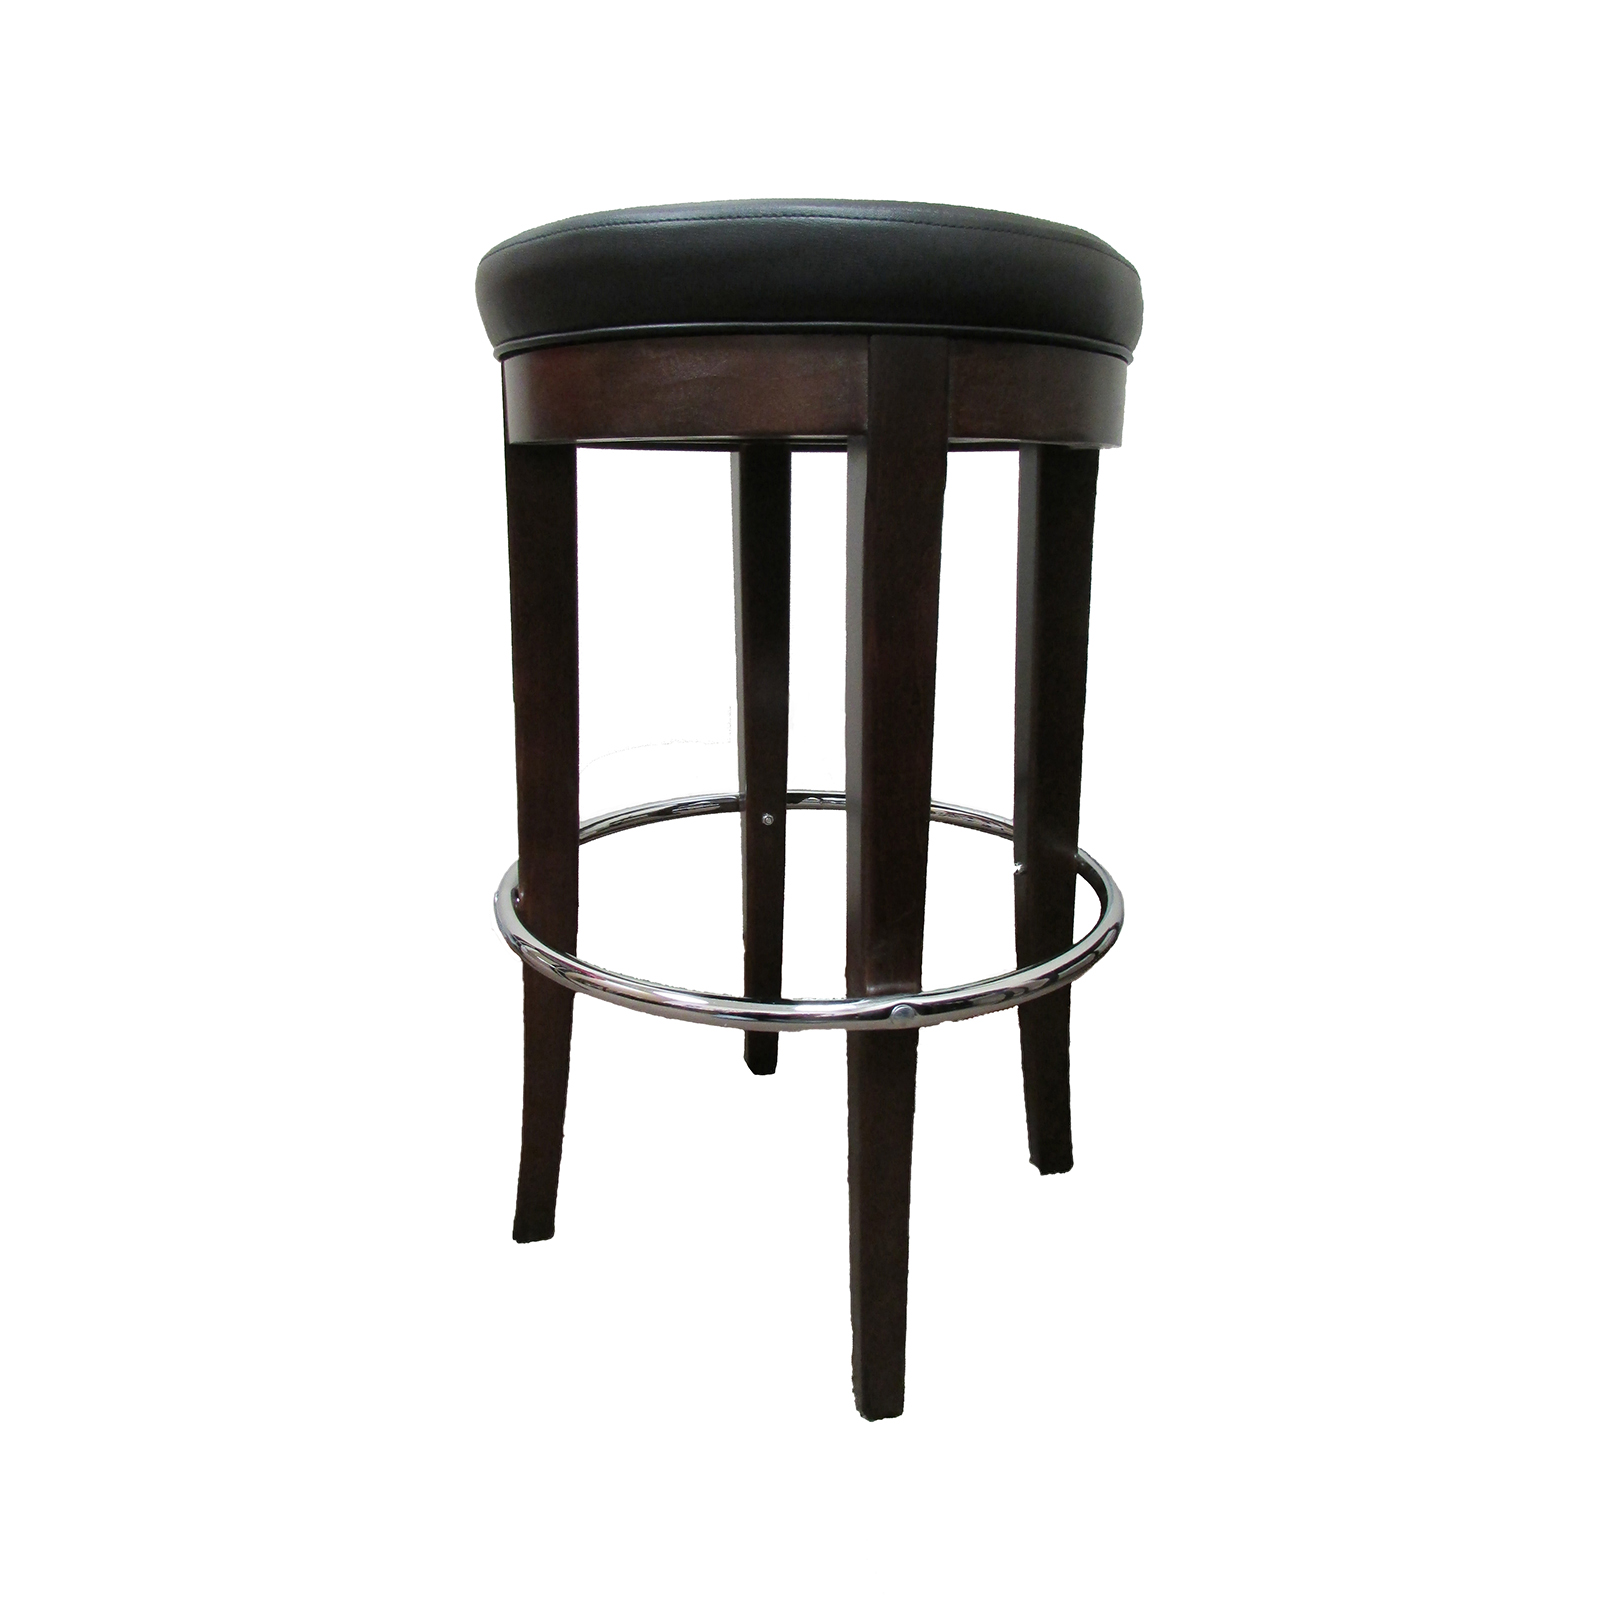 Oak Street BW-626-WNT bar stool, indoor